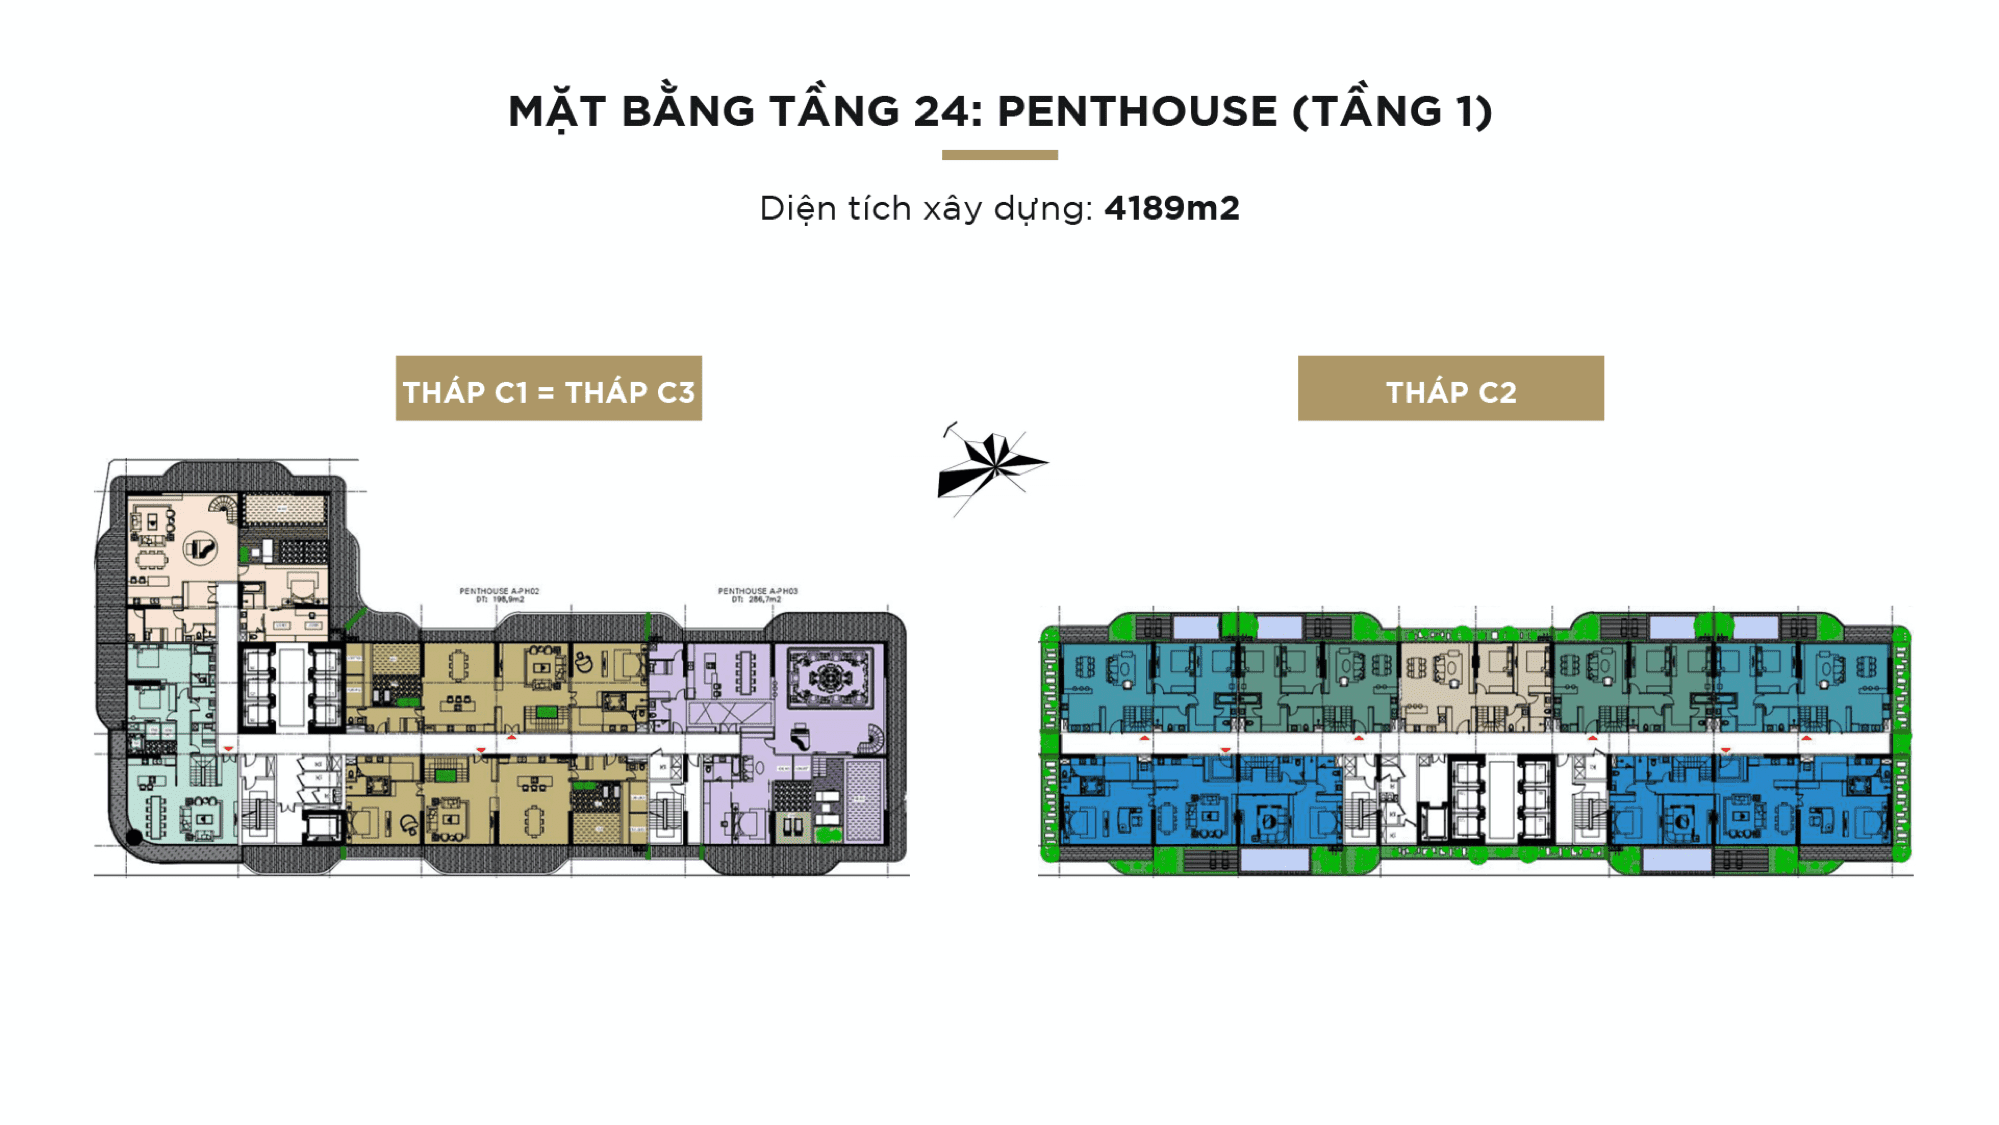 Mặt bằng Sunshine Continental tầng 24: Penthouse (tầng 1)